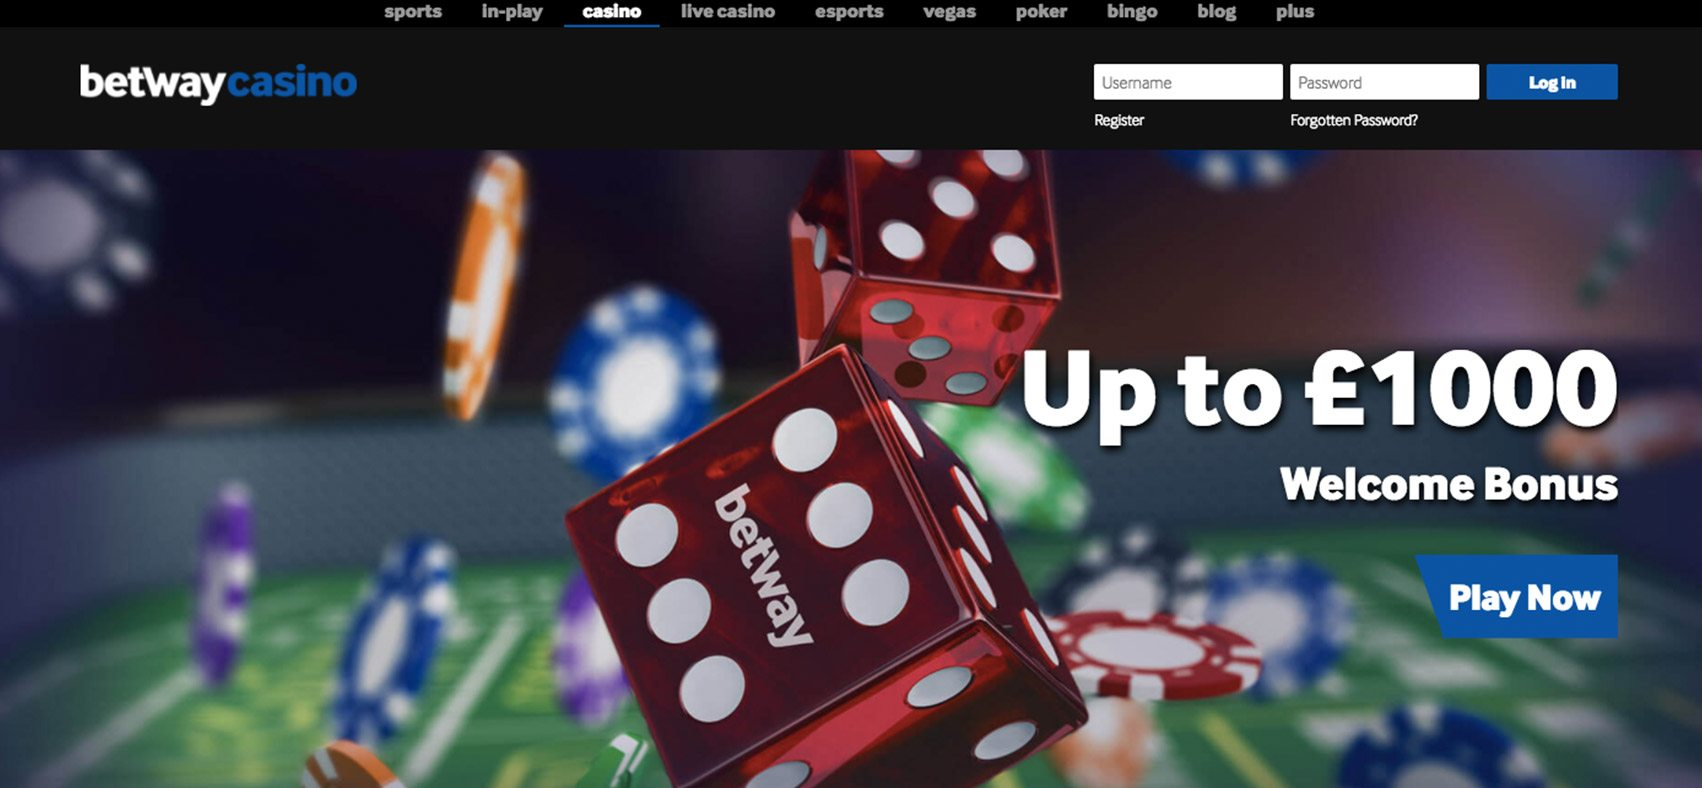 betway casino phone number